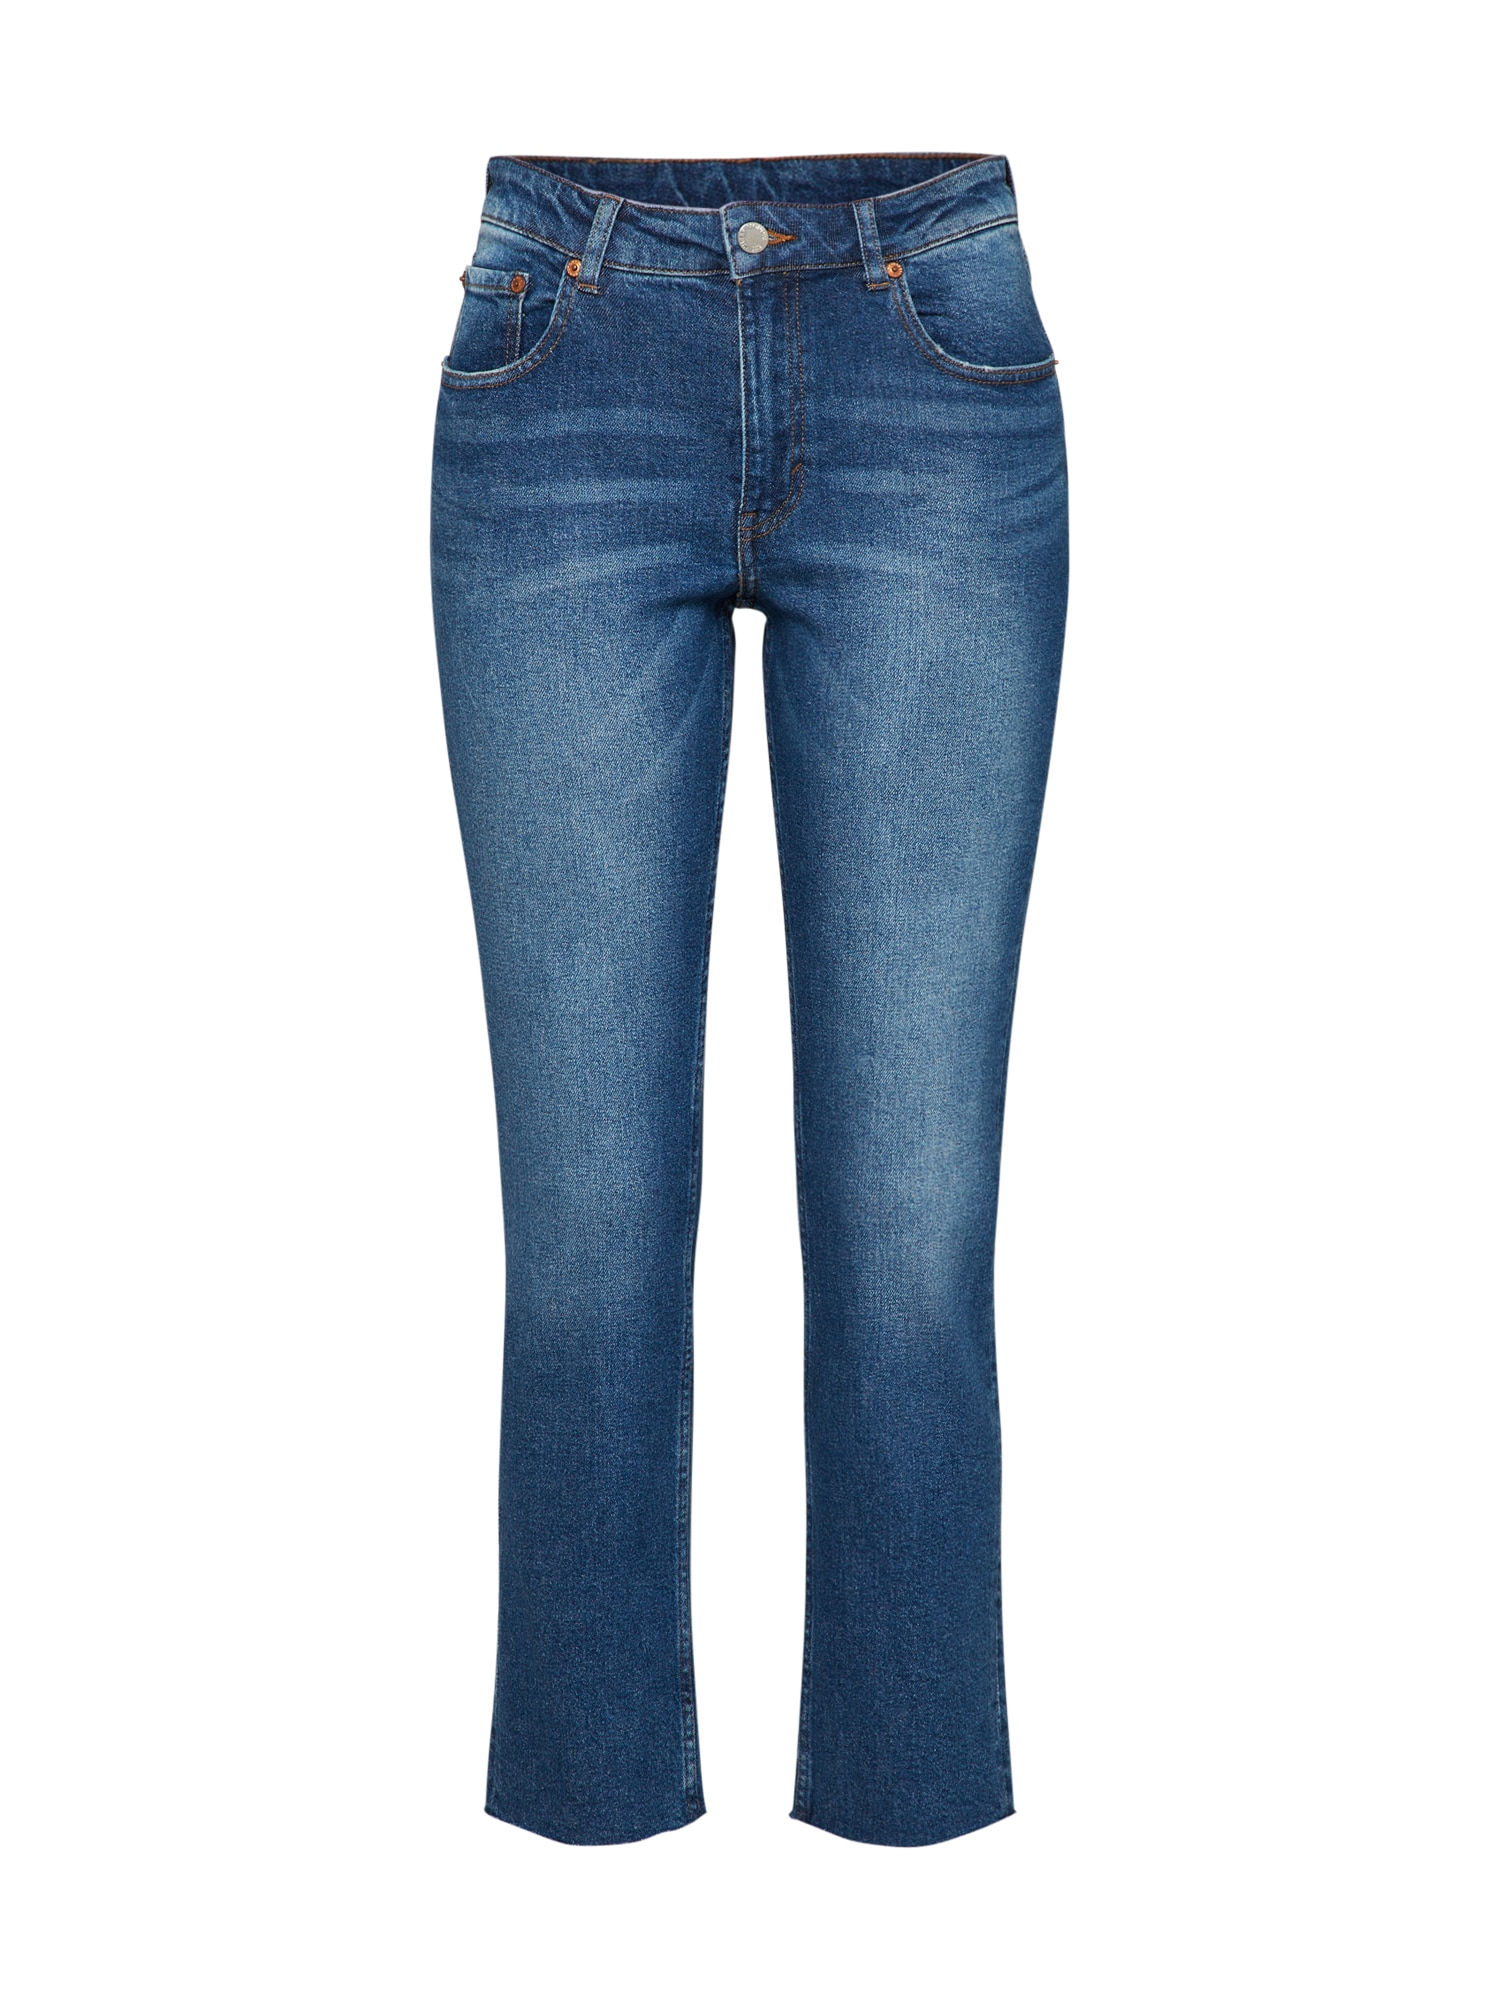 CHEAP MONDAY Dames Jeans Revive blue denim